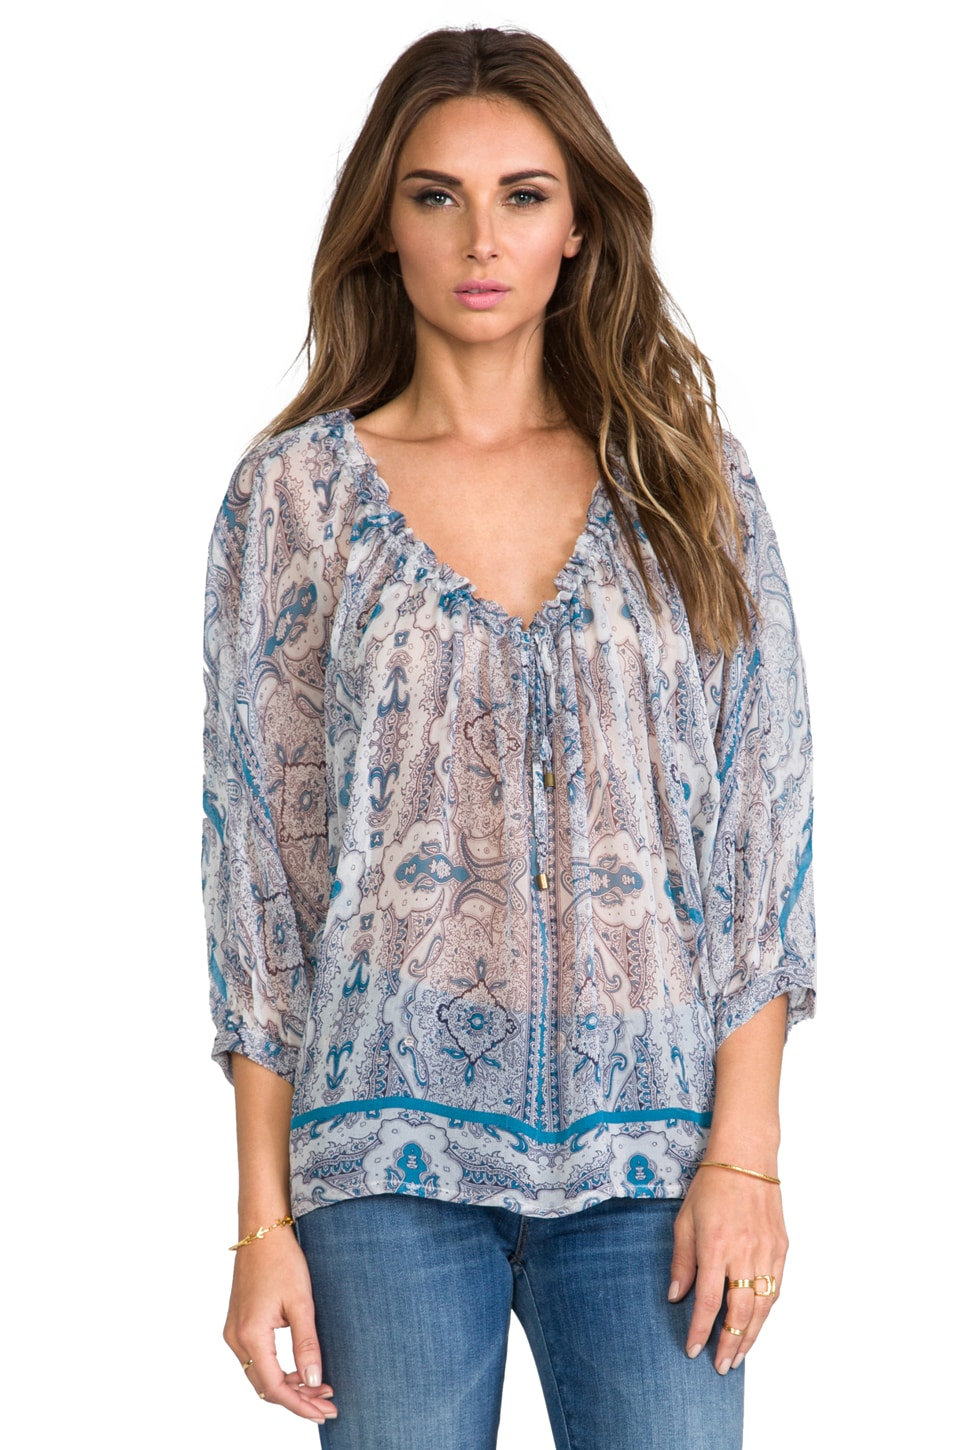 Gypsy 05 Printed Peasant Top in Teal